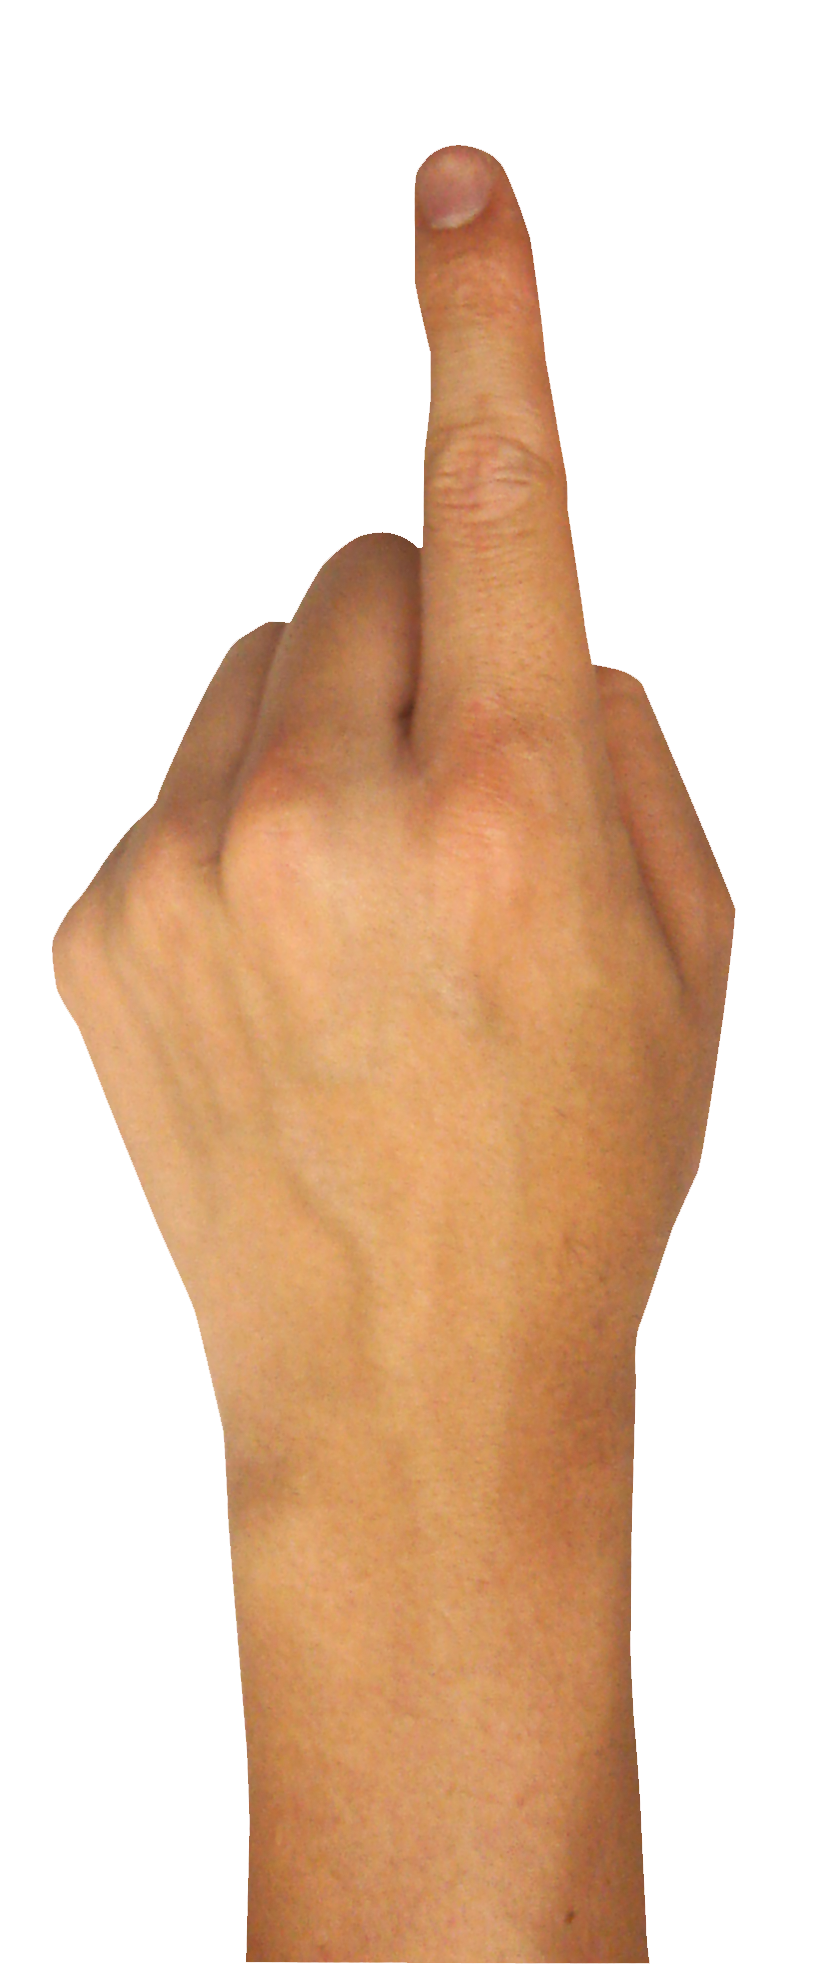 Transparent images pluspng by. Hand finger pointing png picture